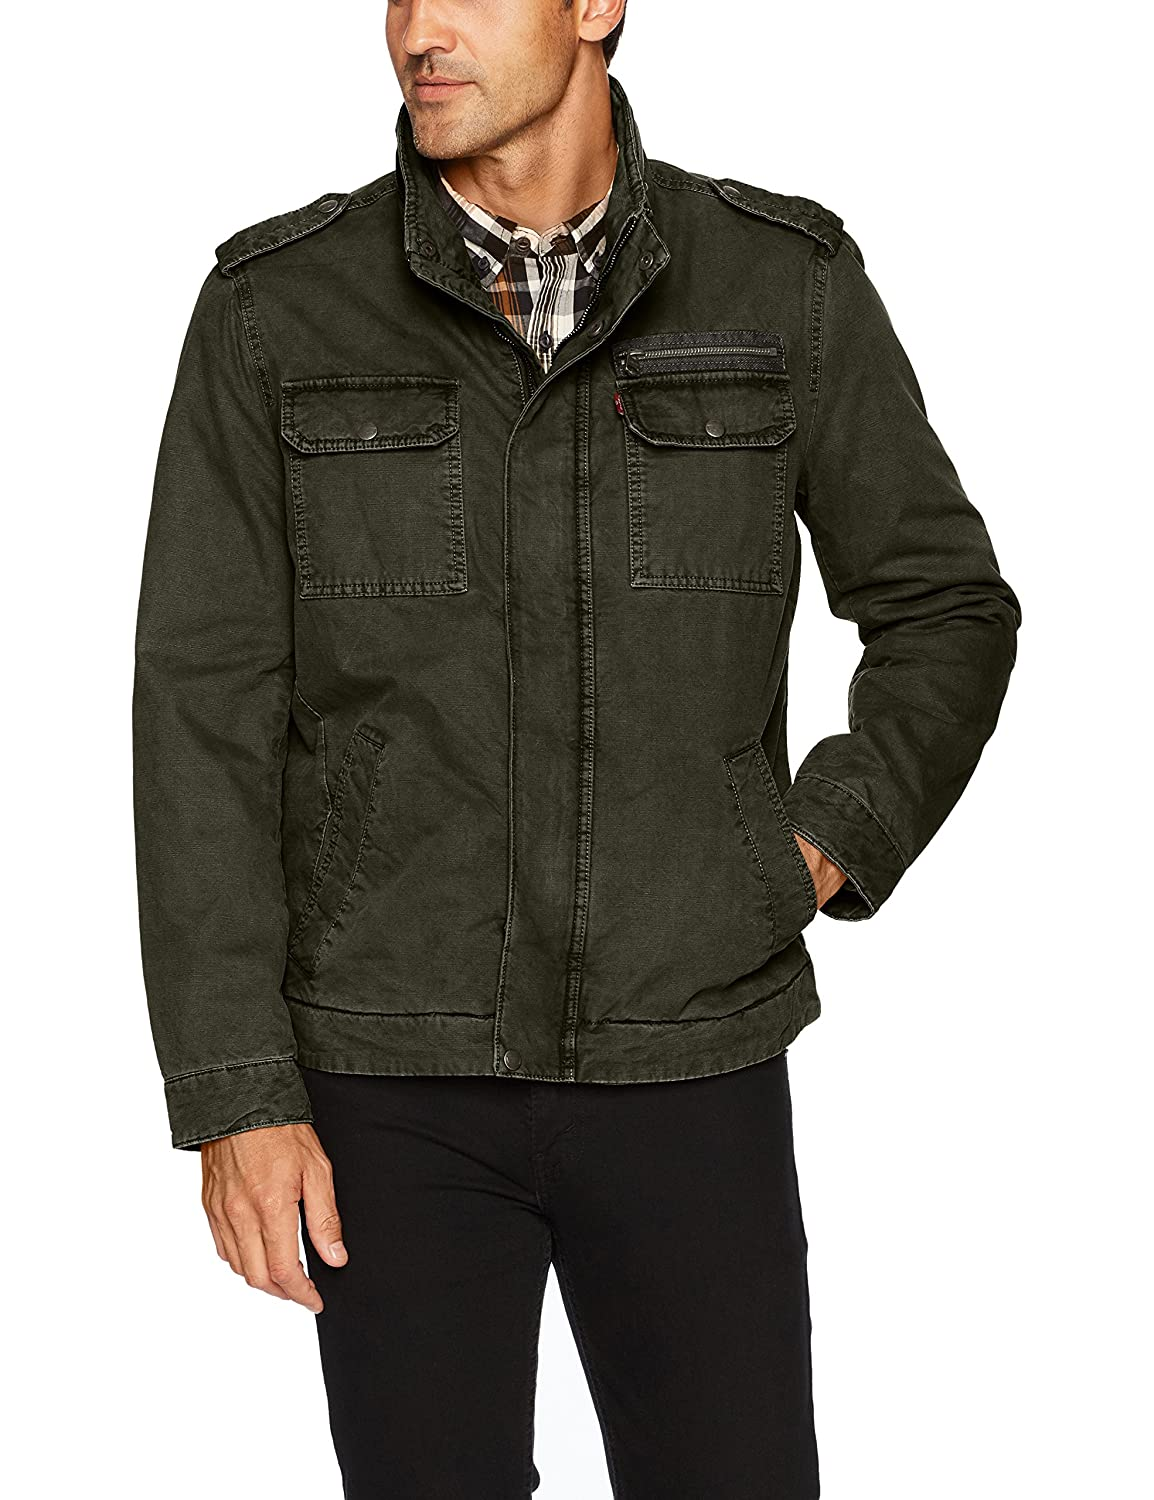 Levi's Men's Washed Cotton Two Pocket Military Jacket LM7RC485